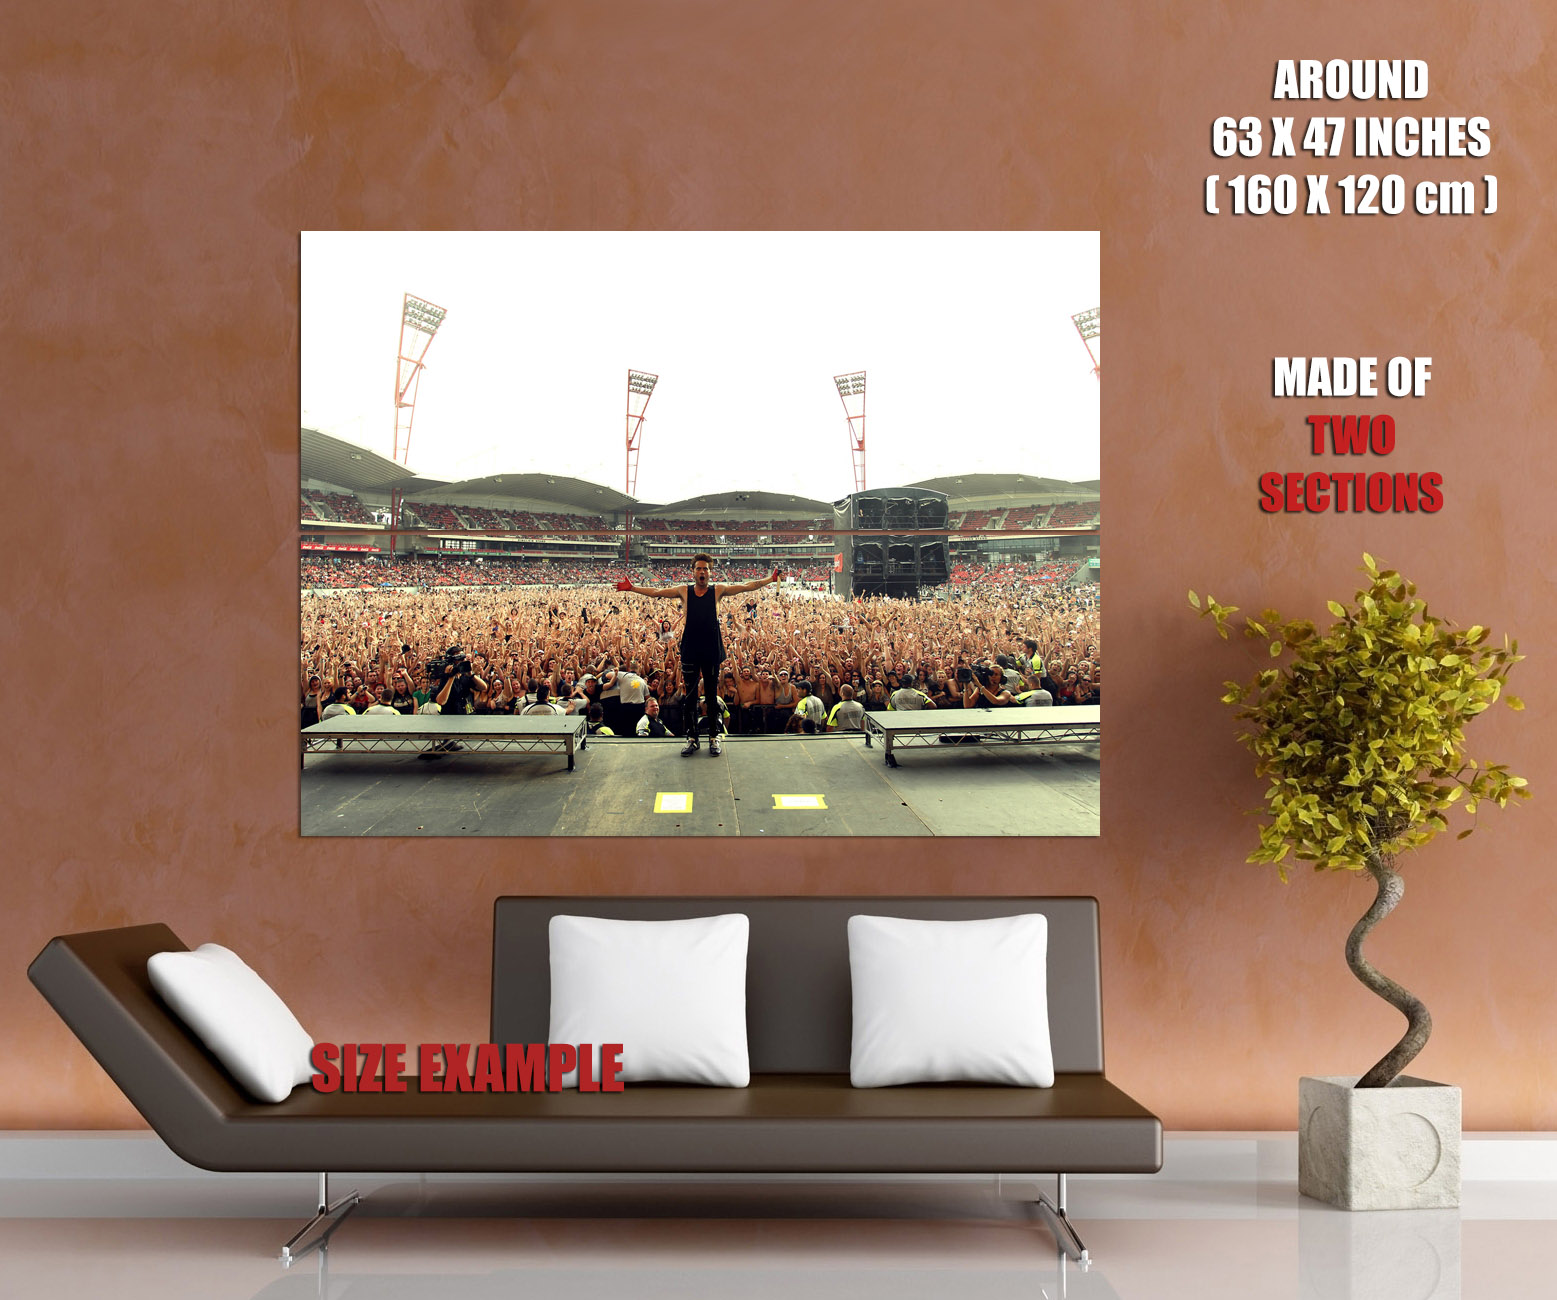 D2636 30 Seconds to Mars Live Jared Leto Music Gigantic Print POSTER